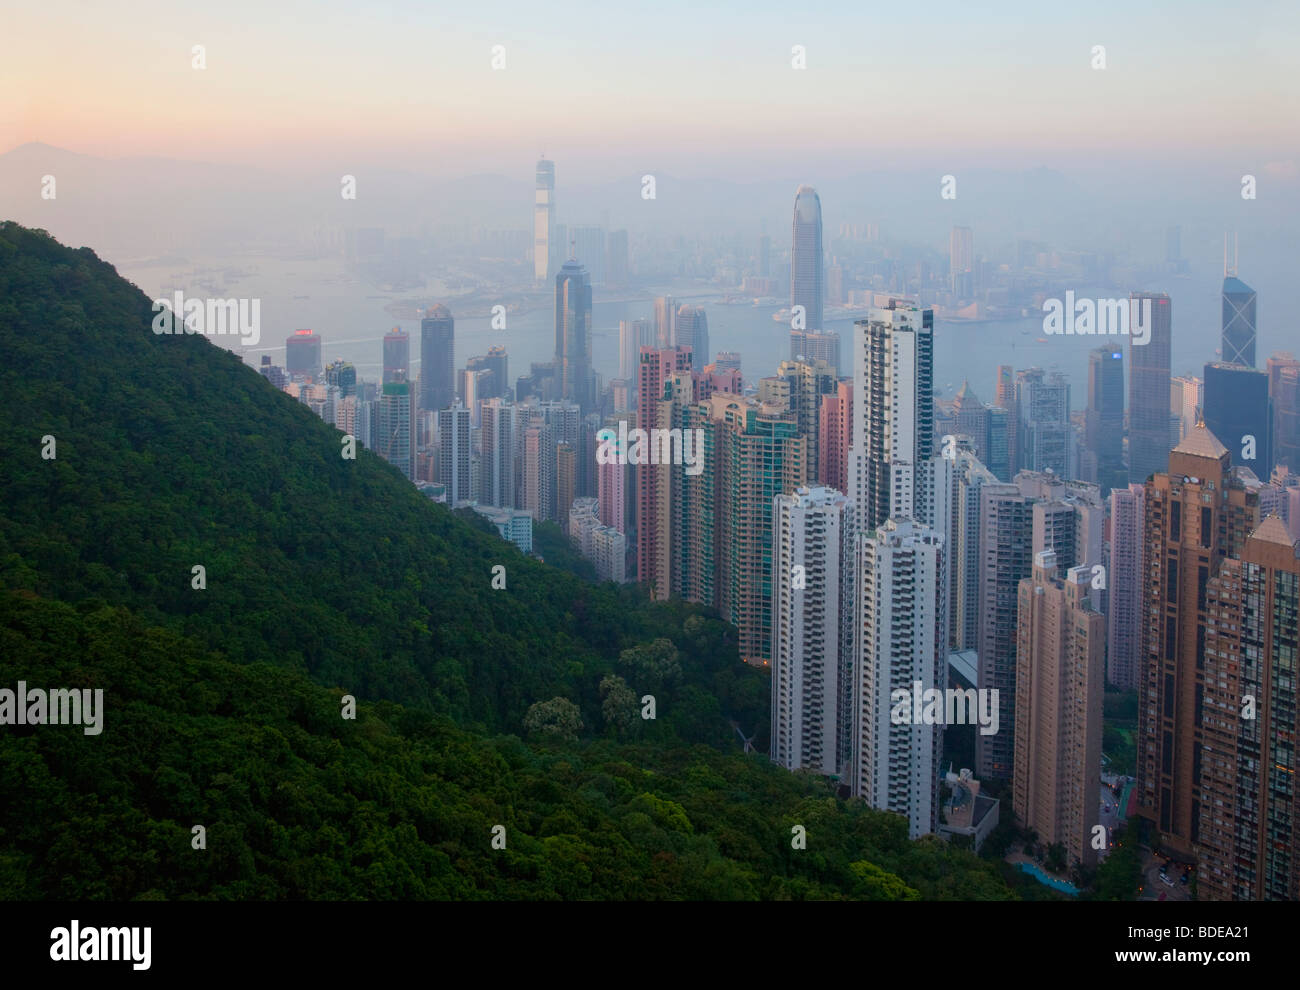 View from The Peak, Shan Teng, Hong Kong, China. - Stock Image